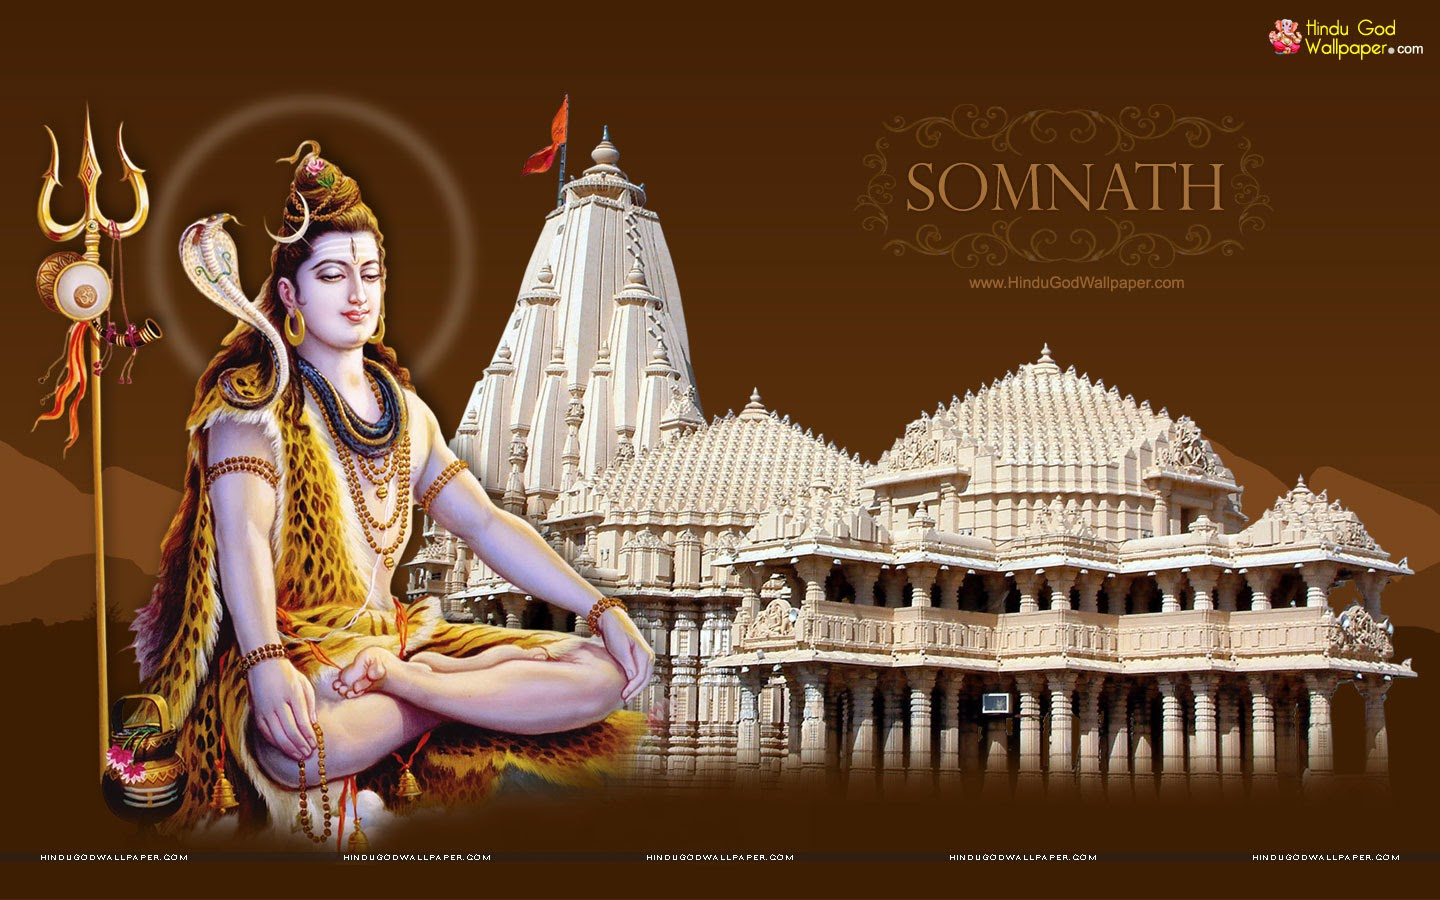 Somnath Wallpapers Hindu God Wallpapers Free Download